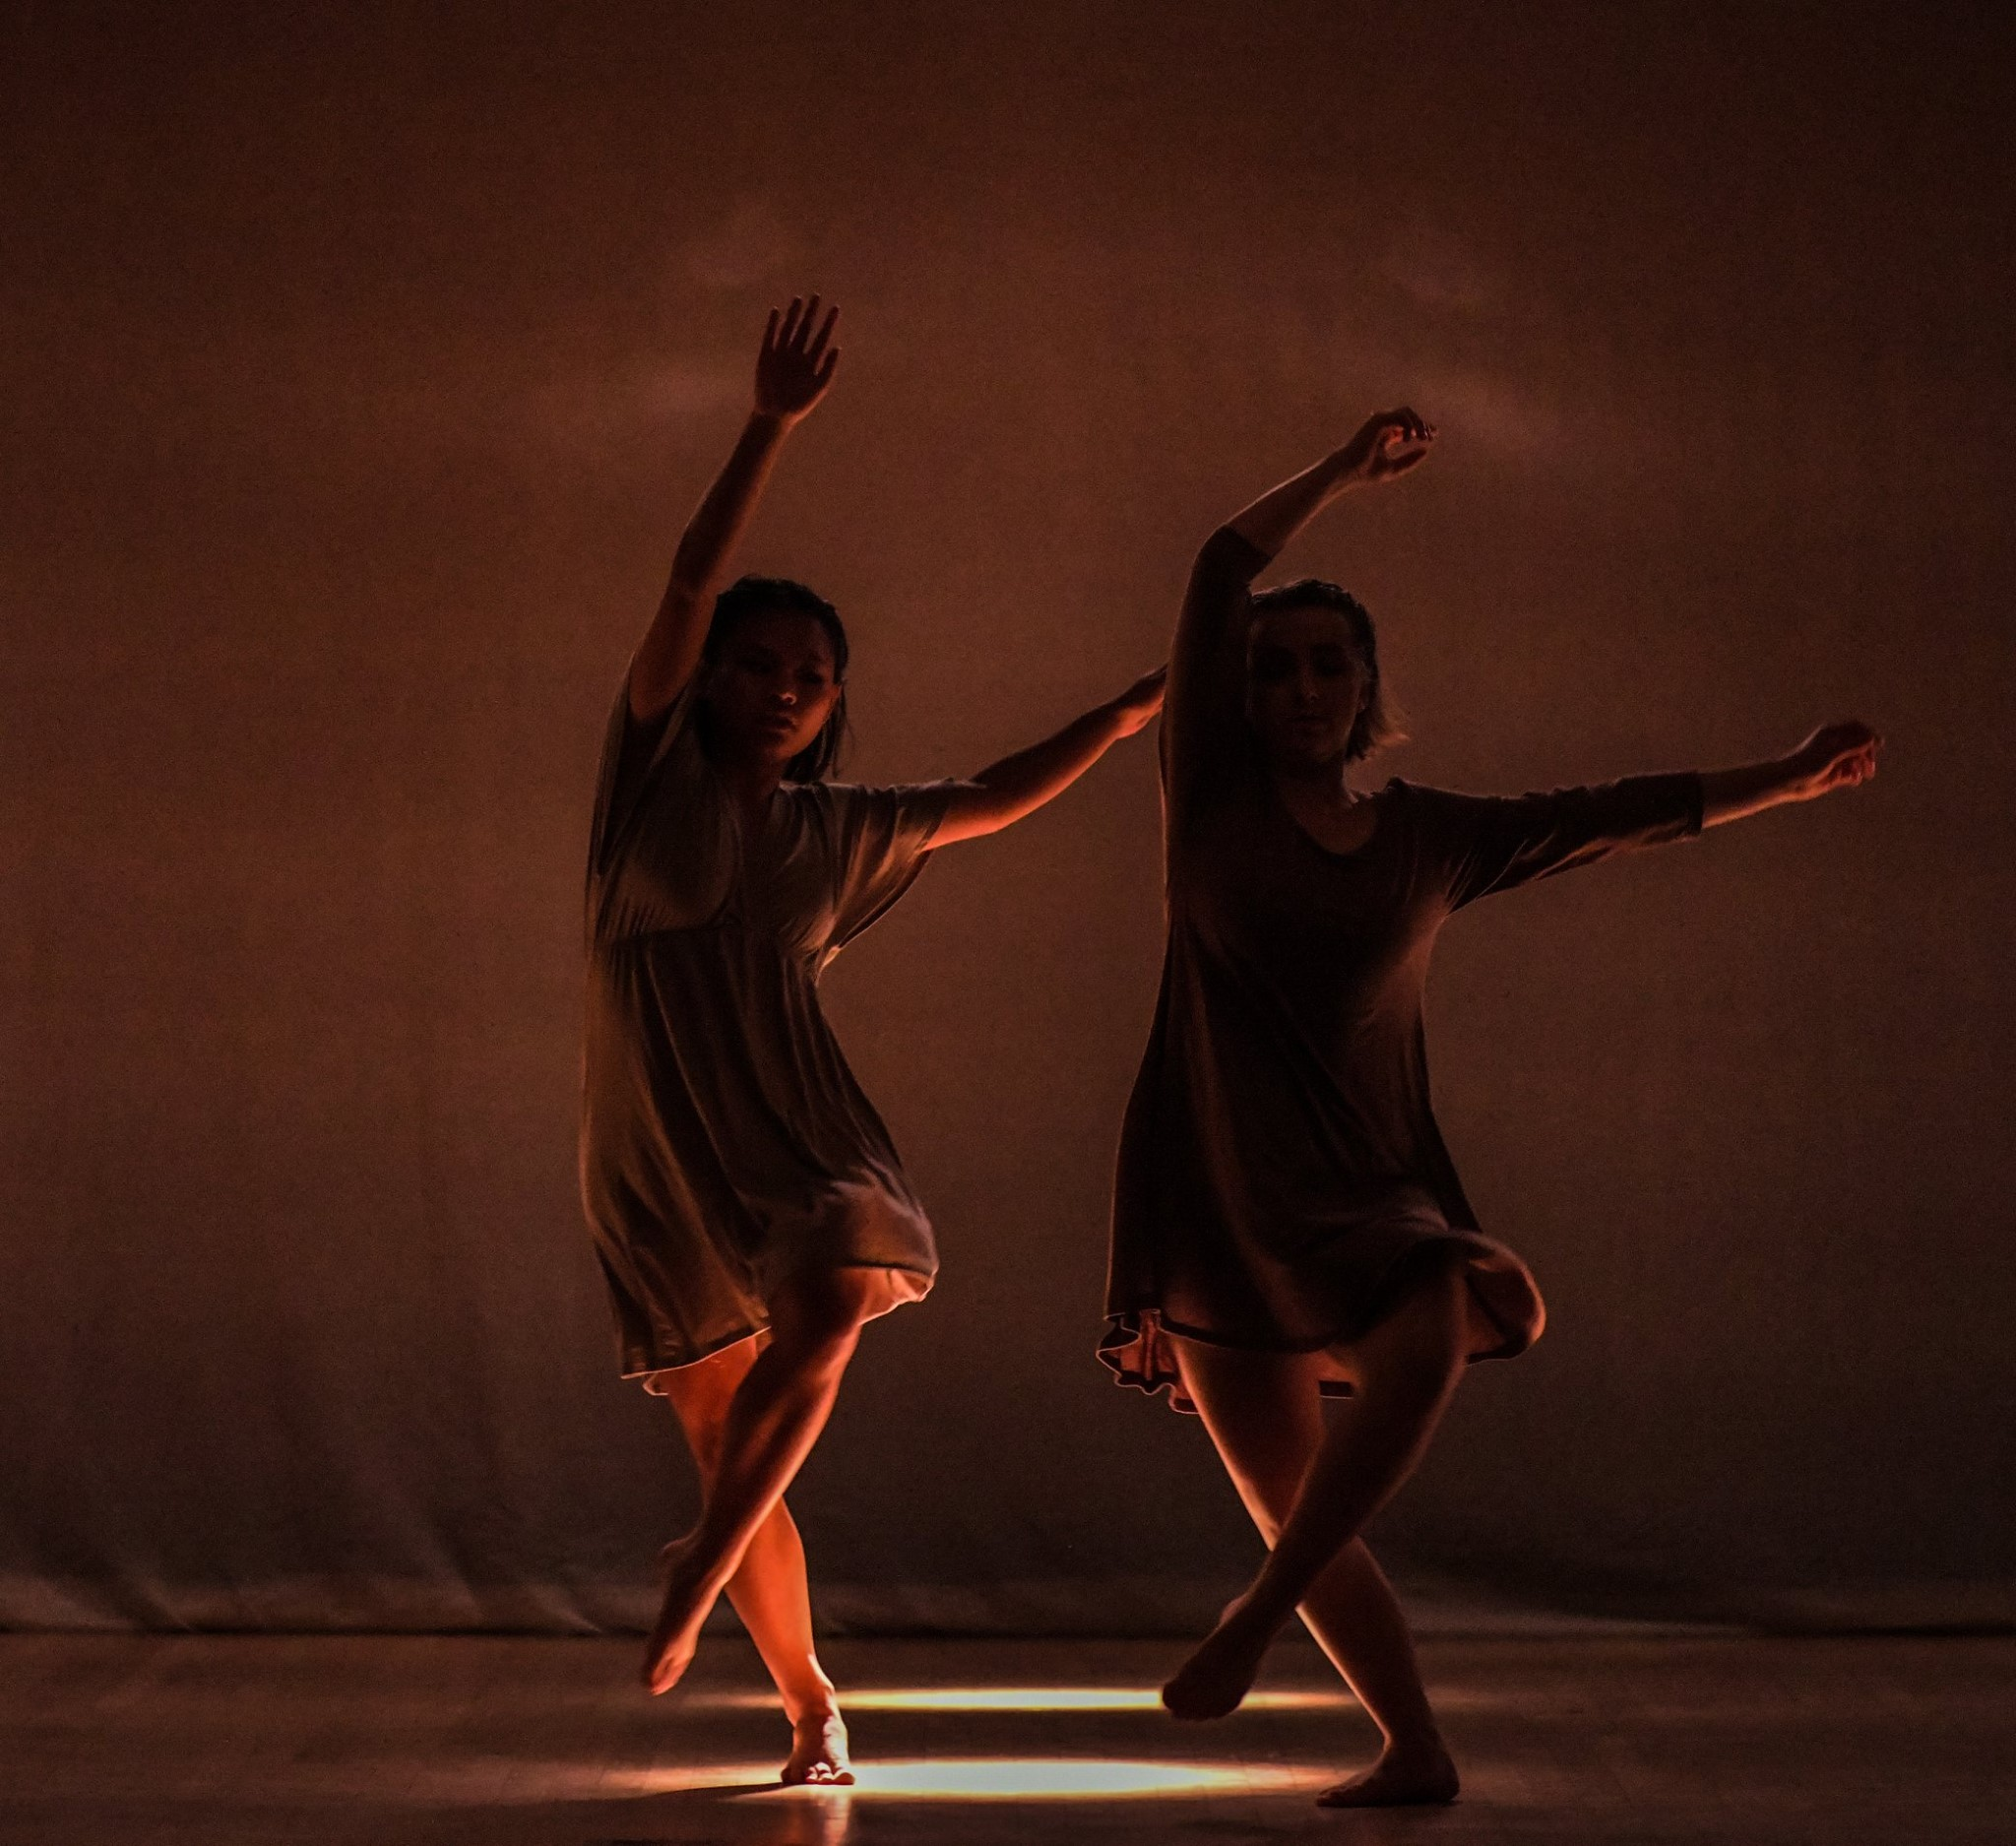 Two girls dancing and the lighting only illuminating the floor and their legs